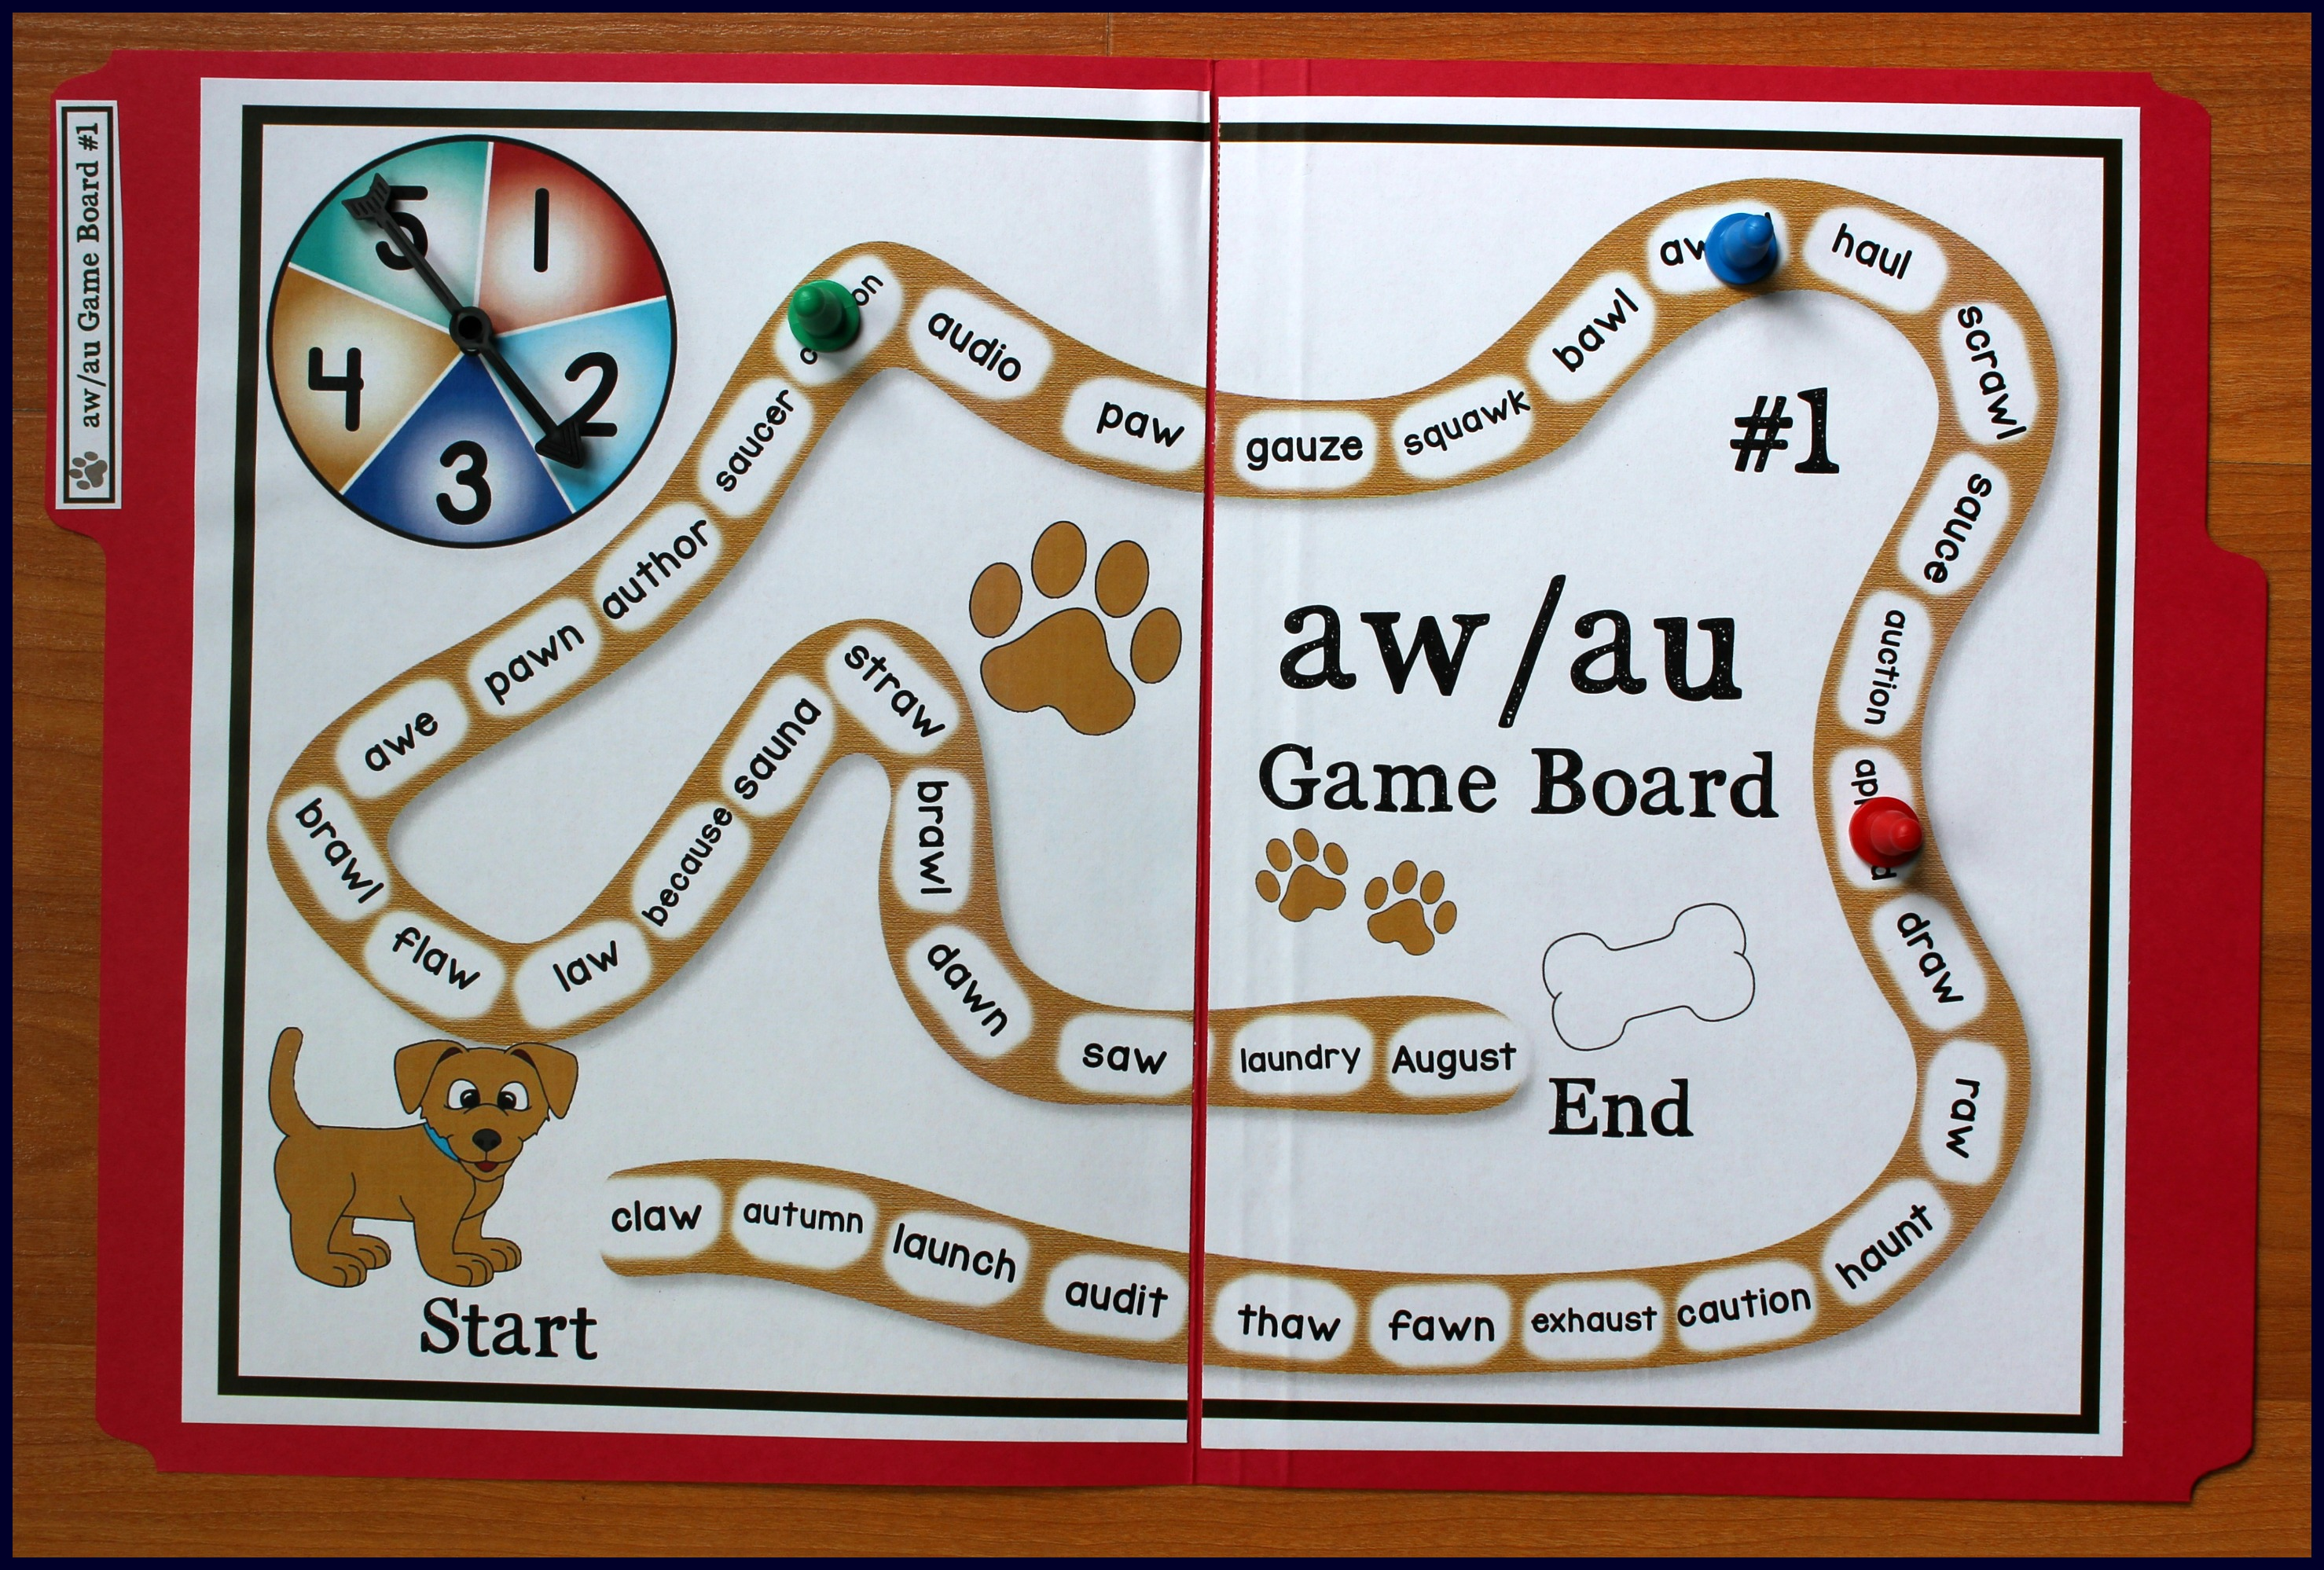 Activities For Teaching The Auaw Digraphs on Activities For Teaching The Auaw Digraphs